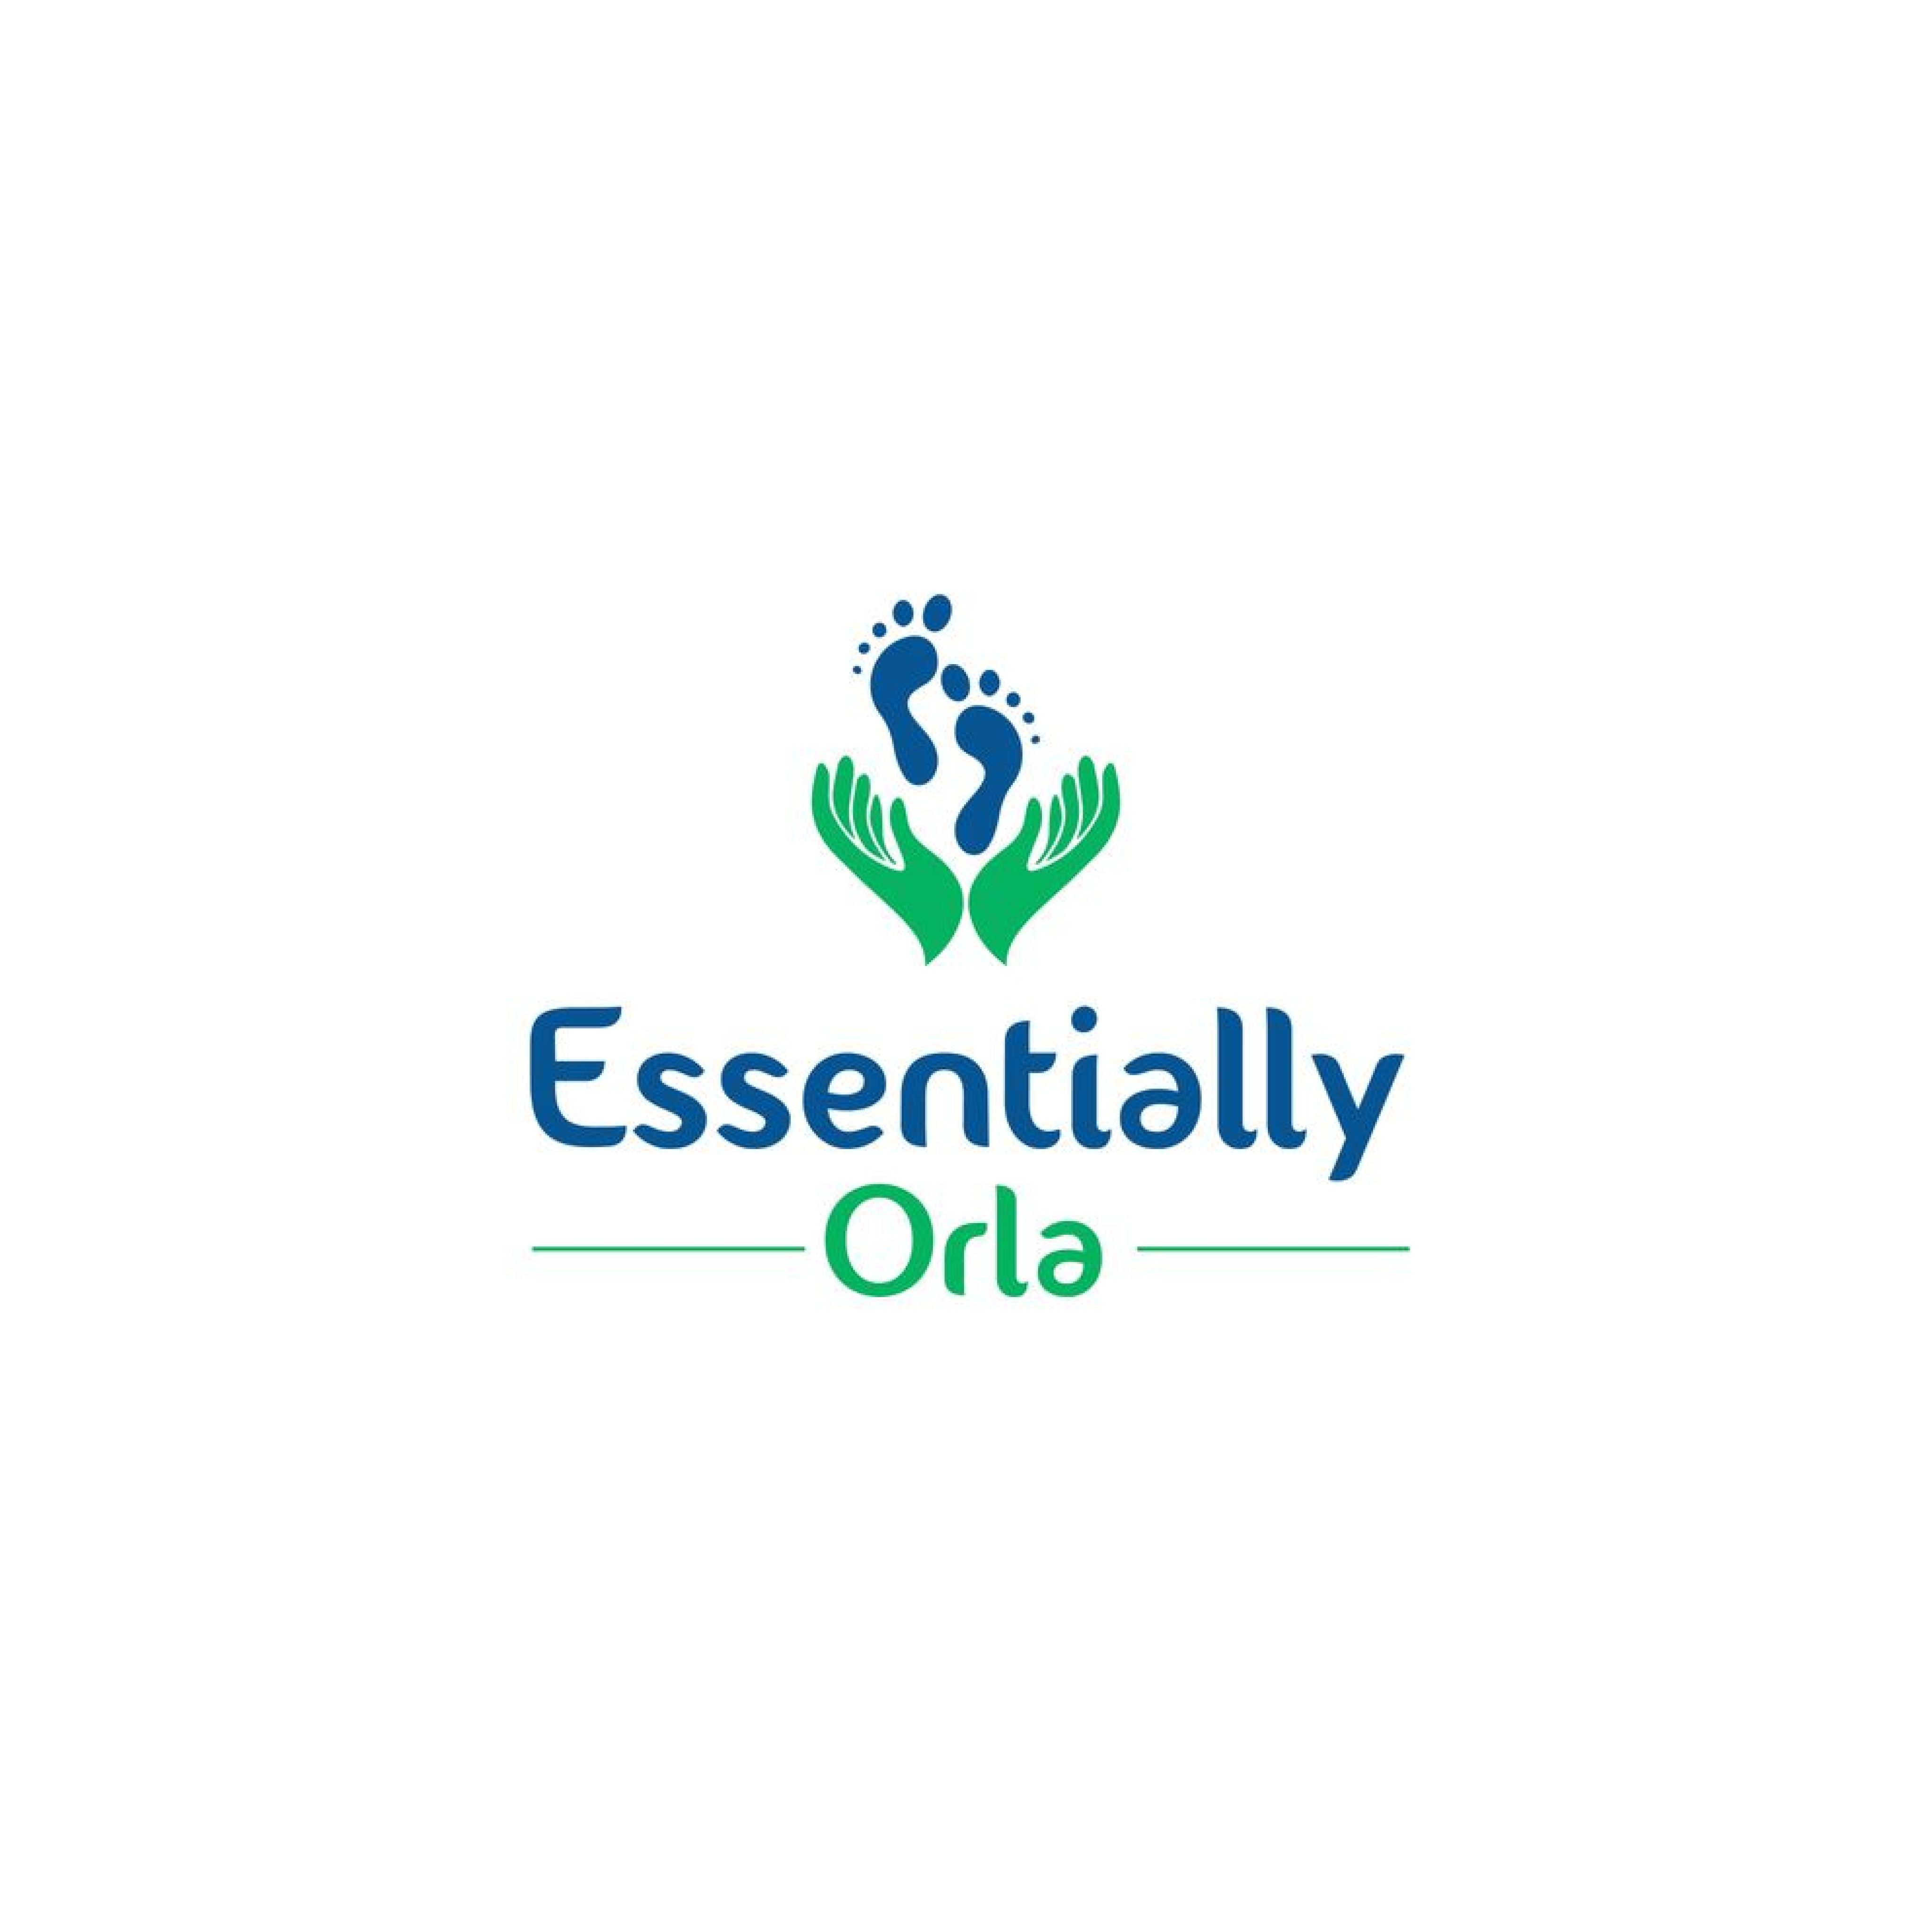 Essentially Orla Reflexology essential oils